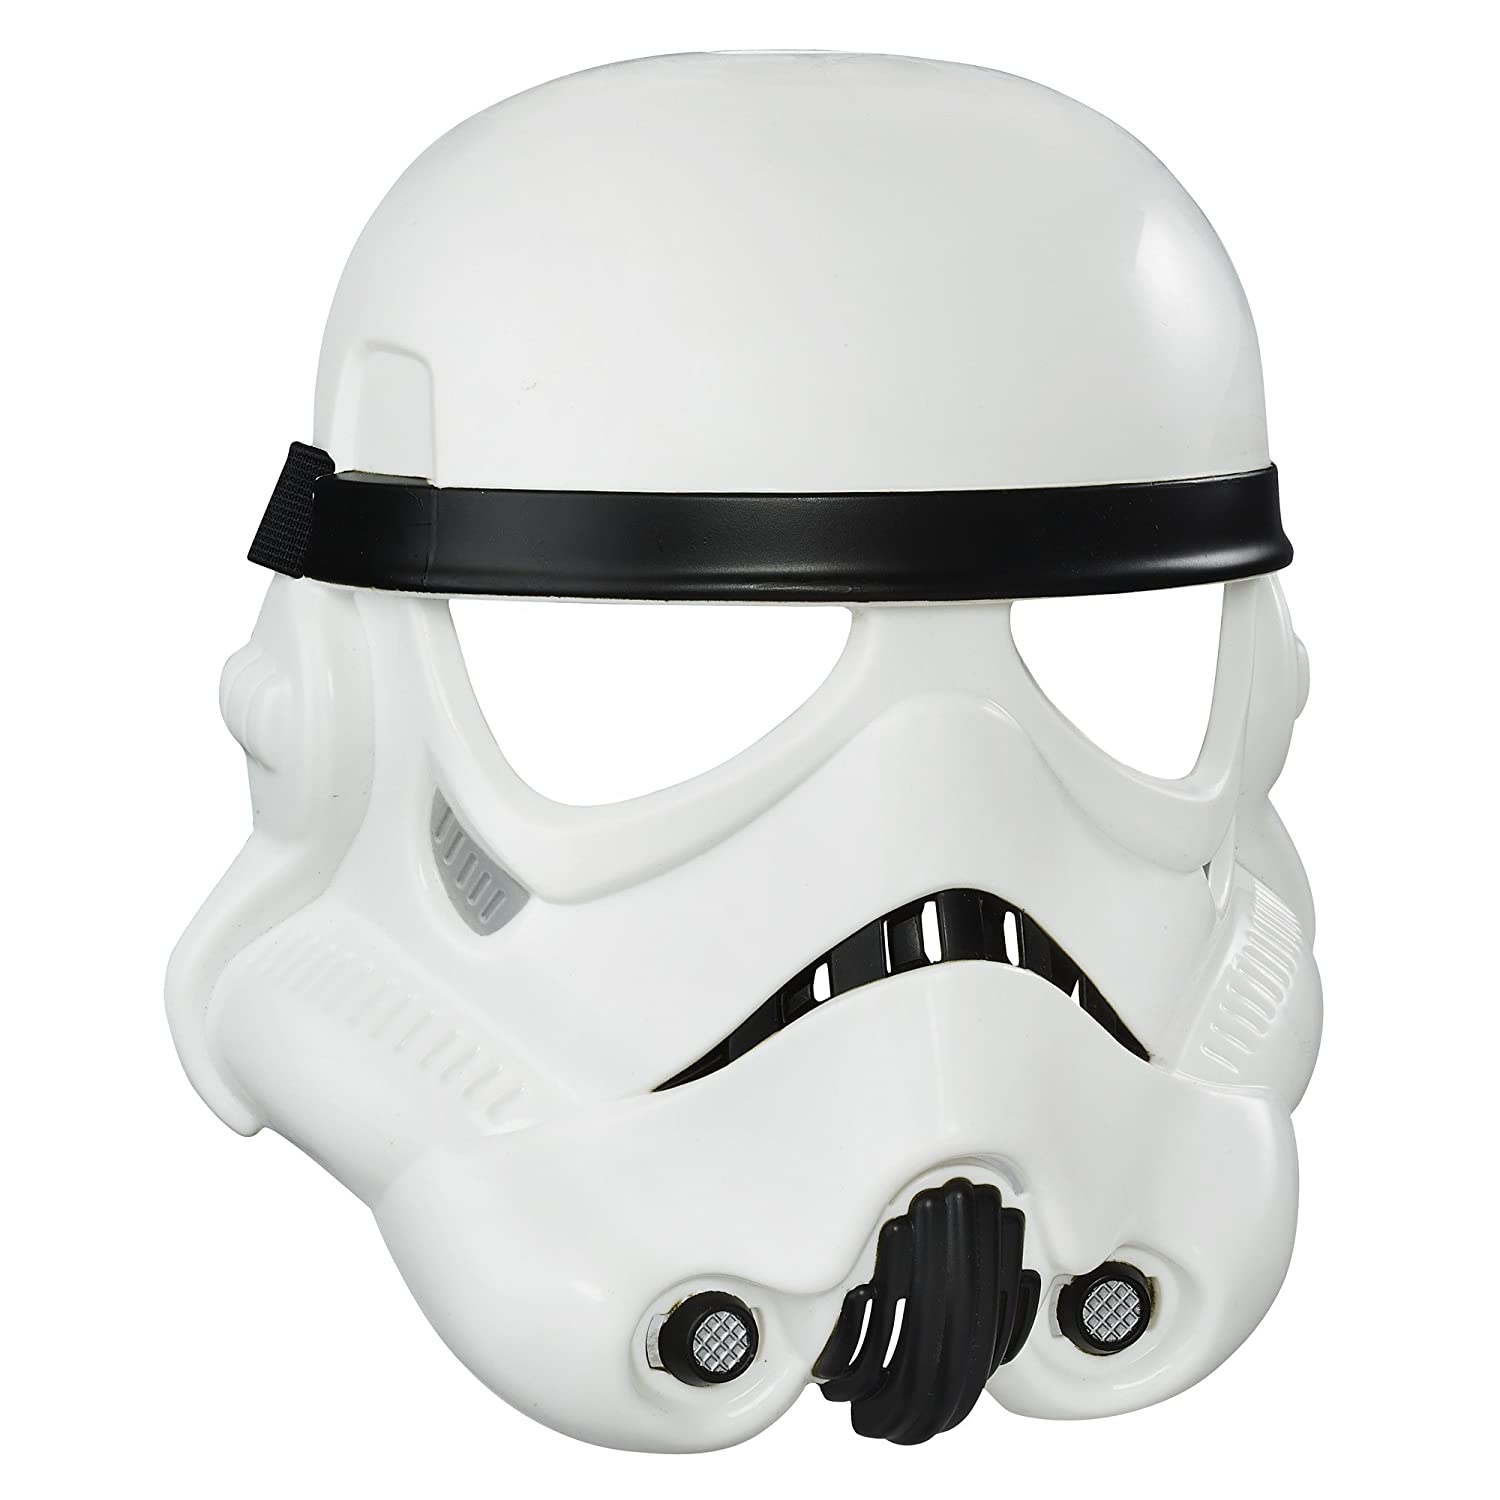 Star Wars B3223 Rogue One Sw R1 Imperial Stormtrooper